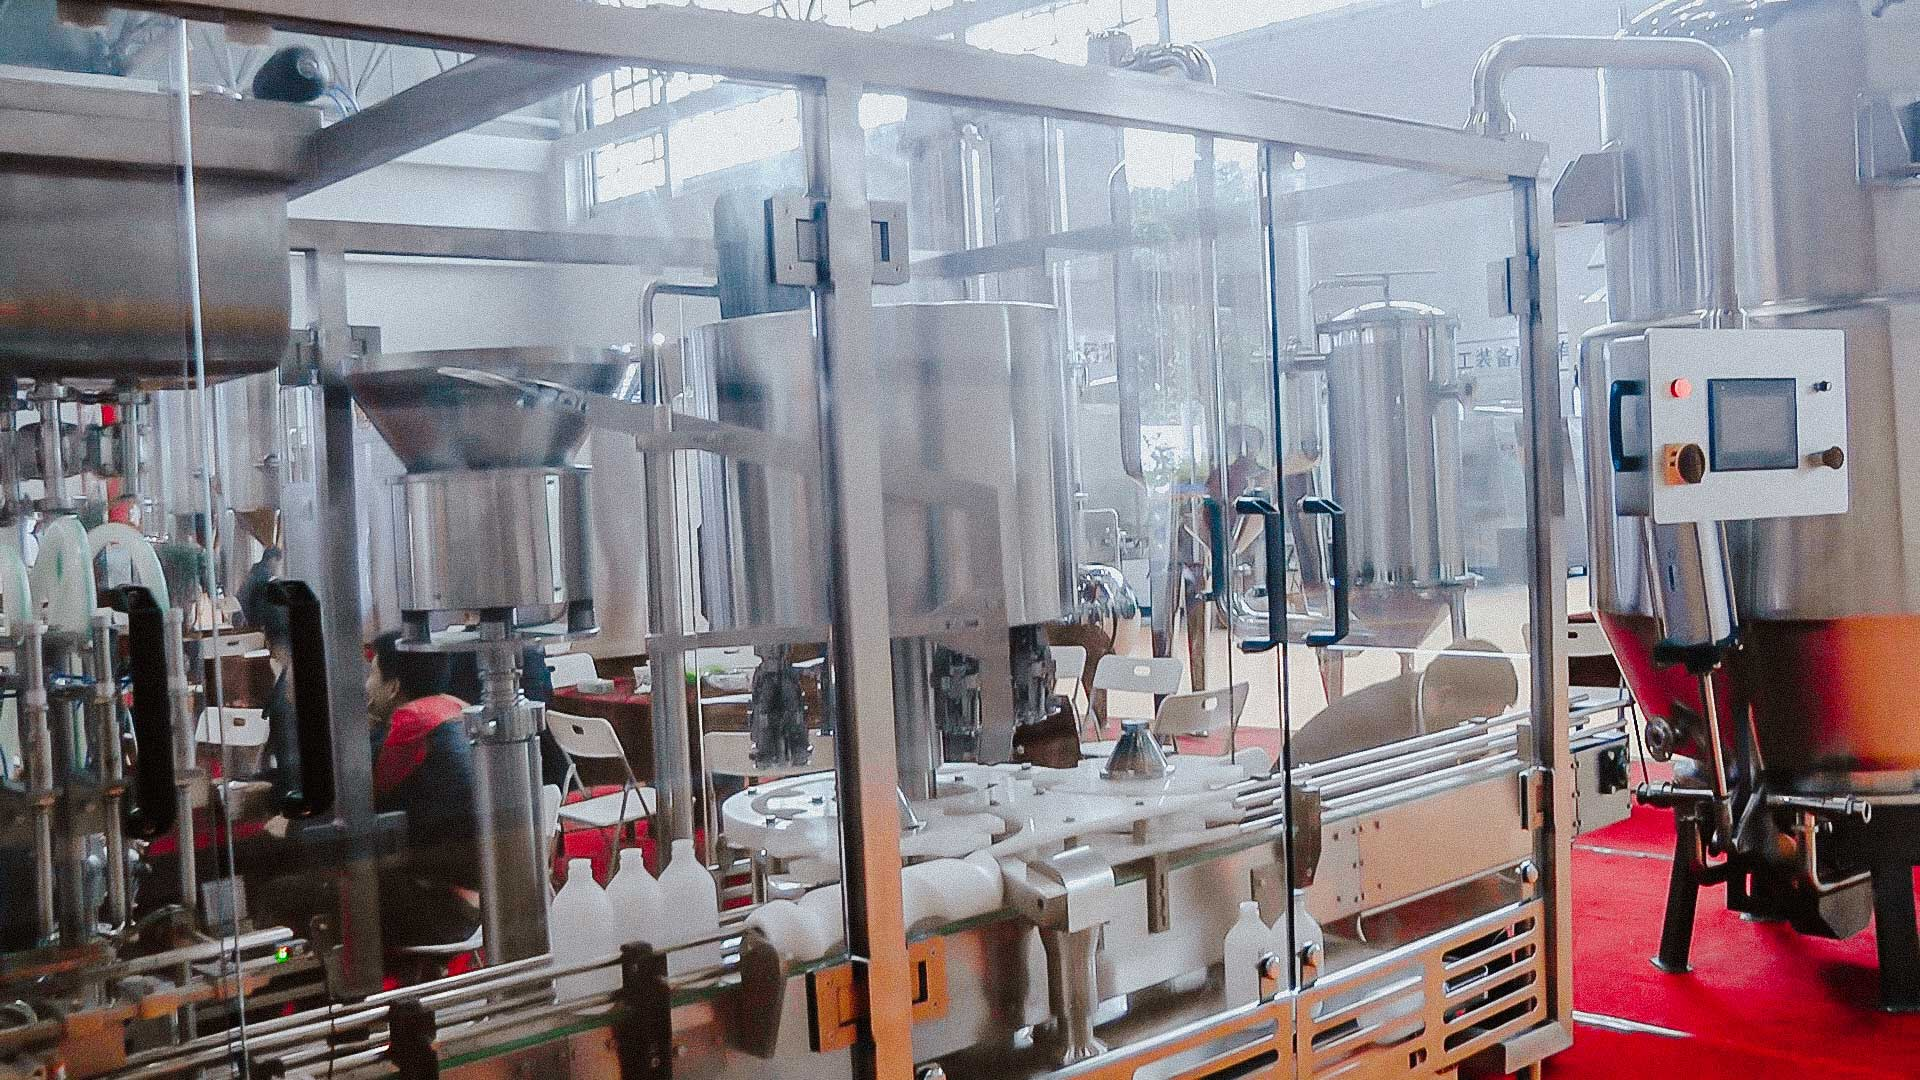 Automatic bottling machine for large plastic bottles and screw cap closure